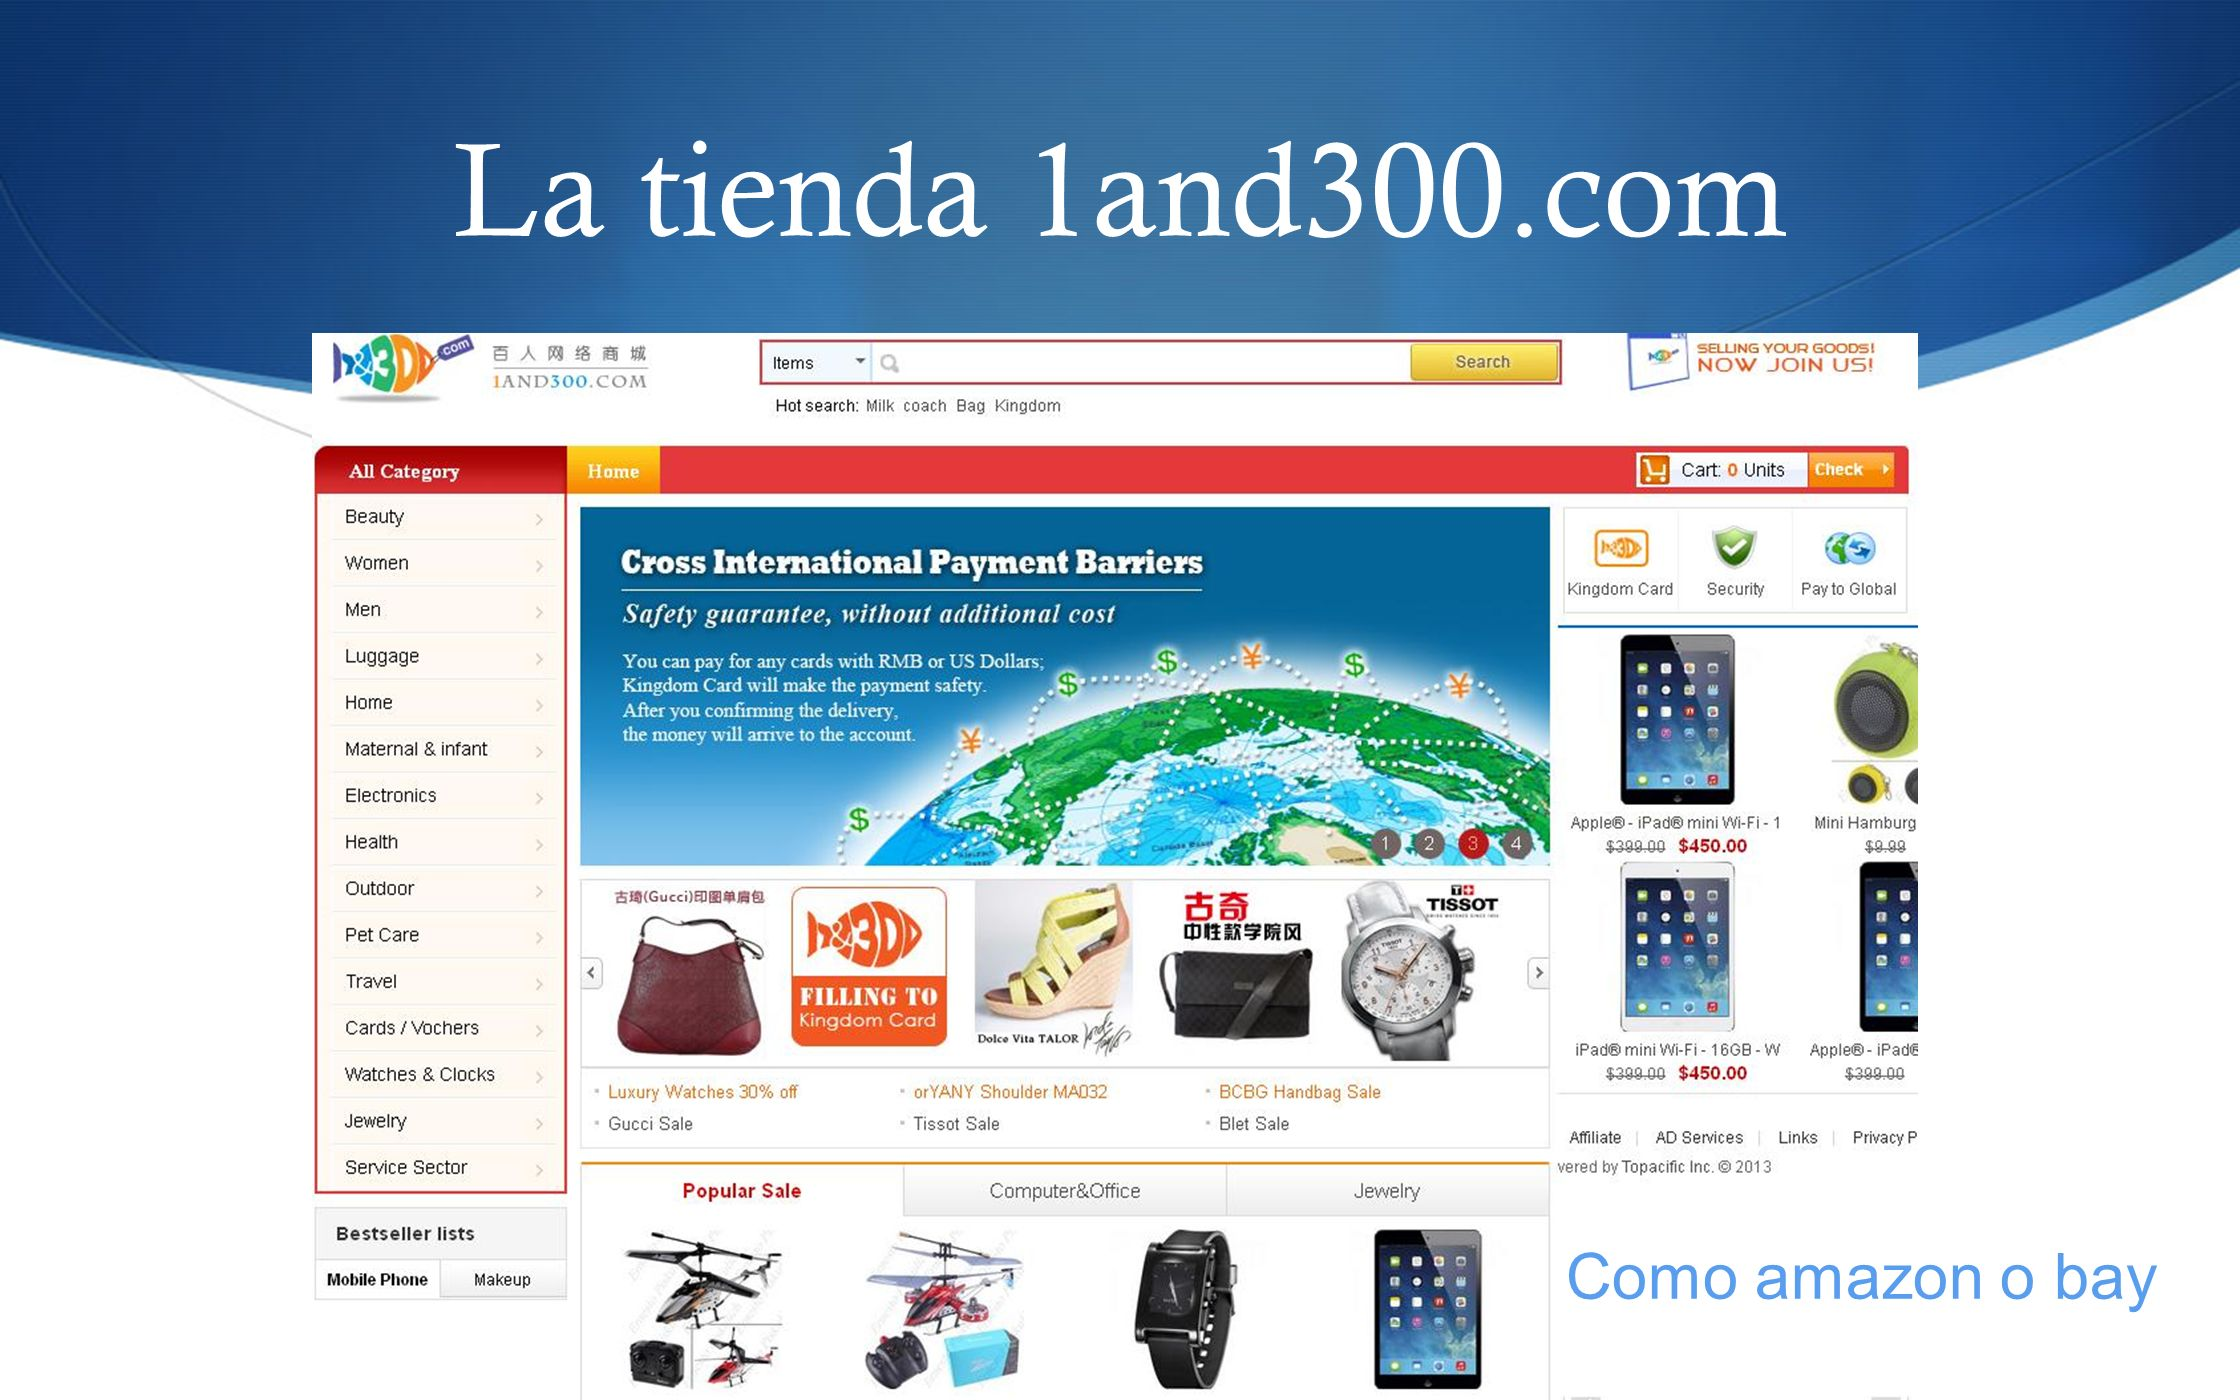 La tienda 1and300.com Como amazon o bay